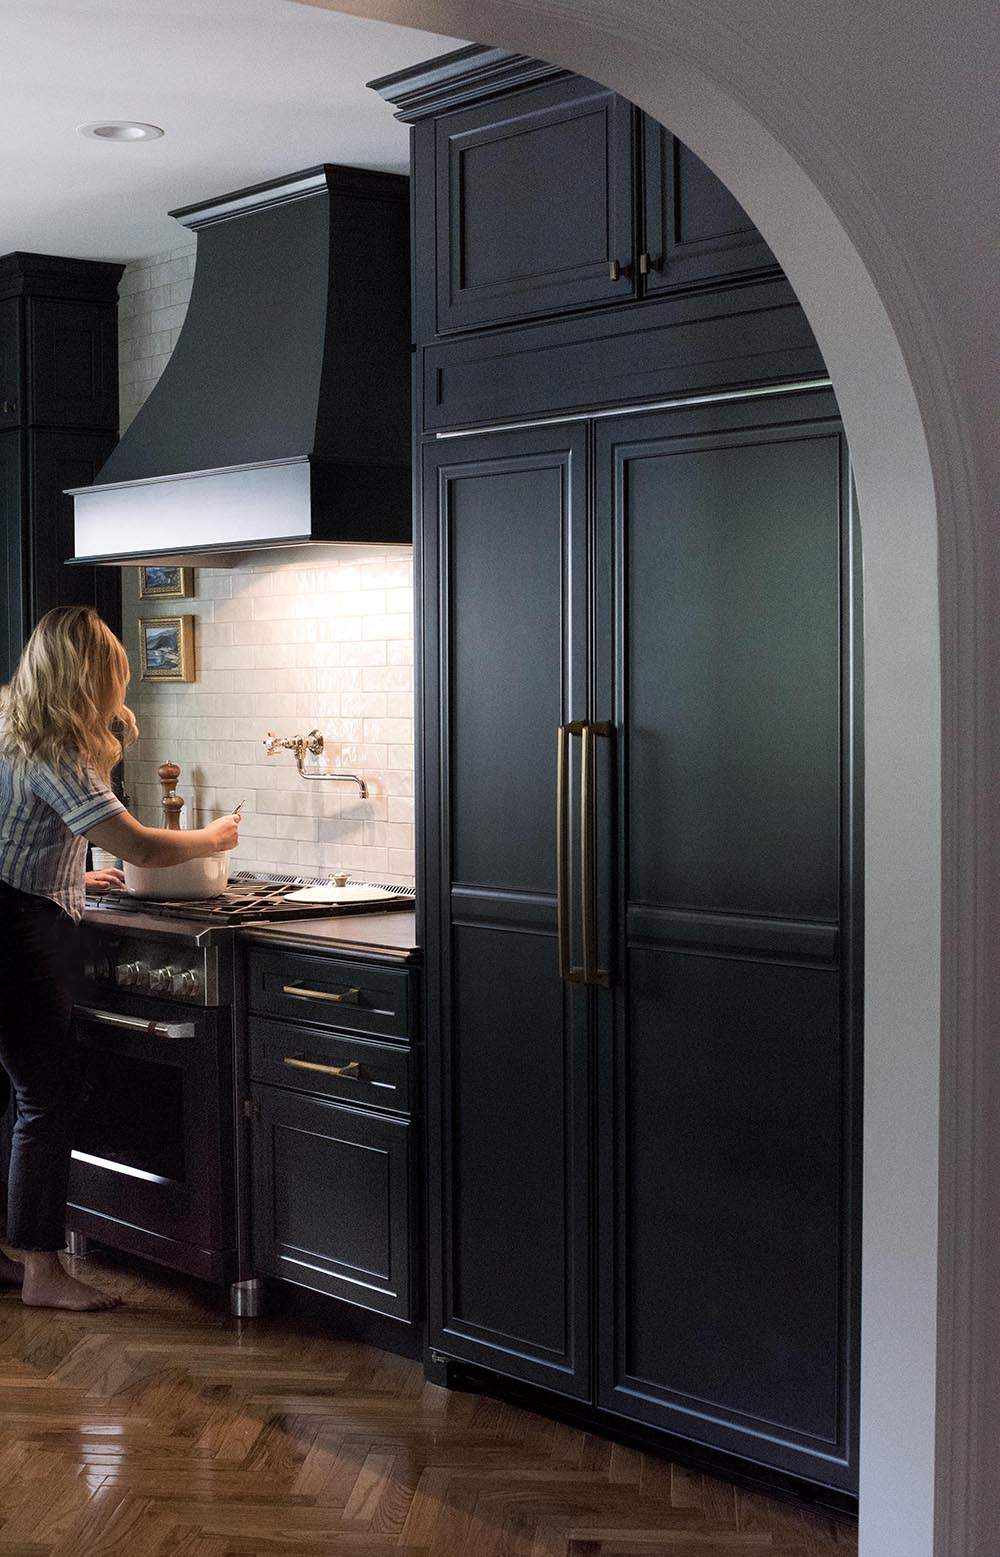 Guide For Properly Lighting A Kitchen Room For Tuesday